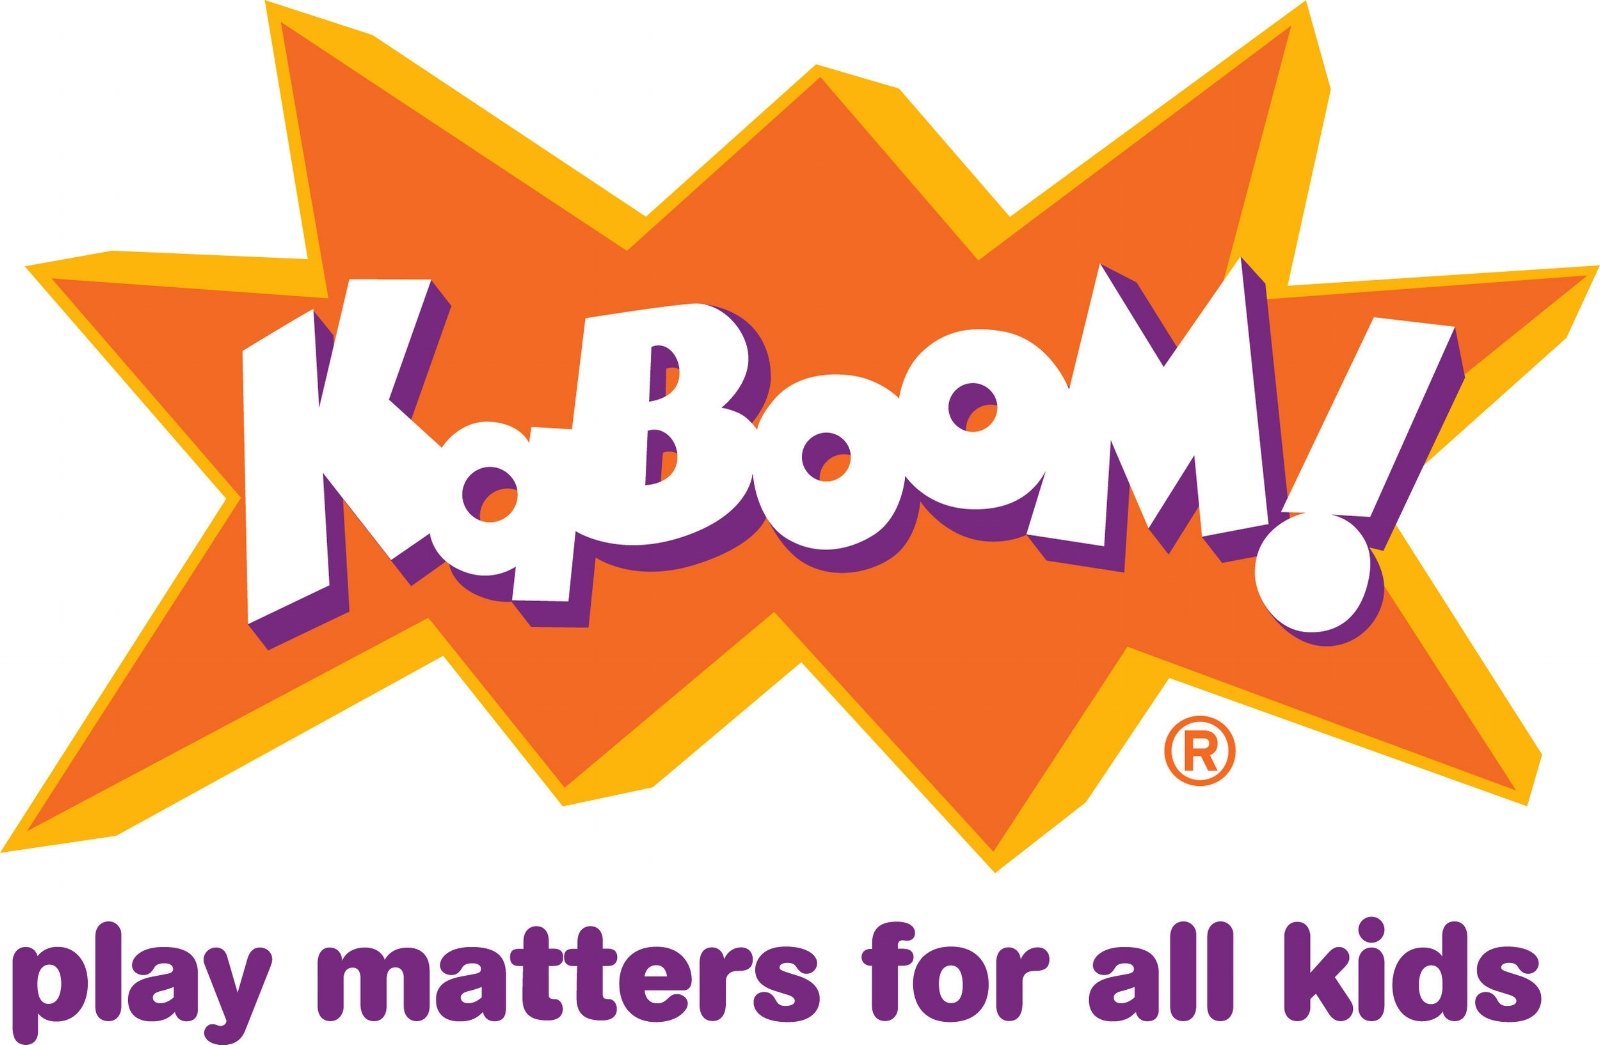 G7D has been selected for a KaBOOM! grant! -